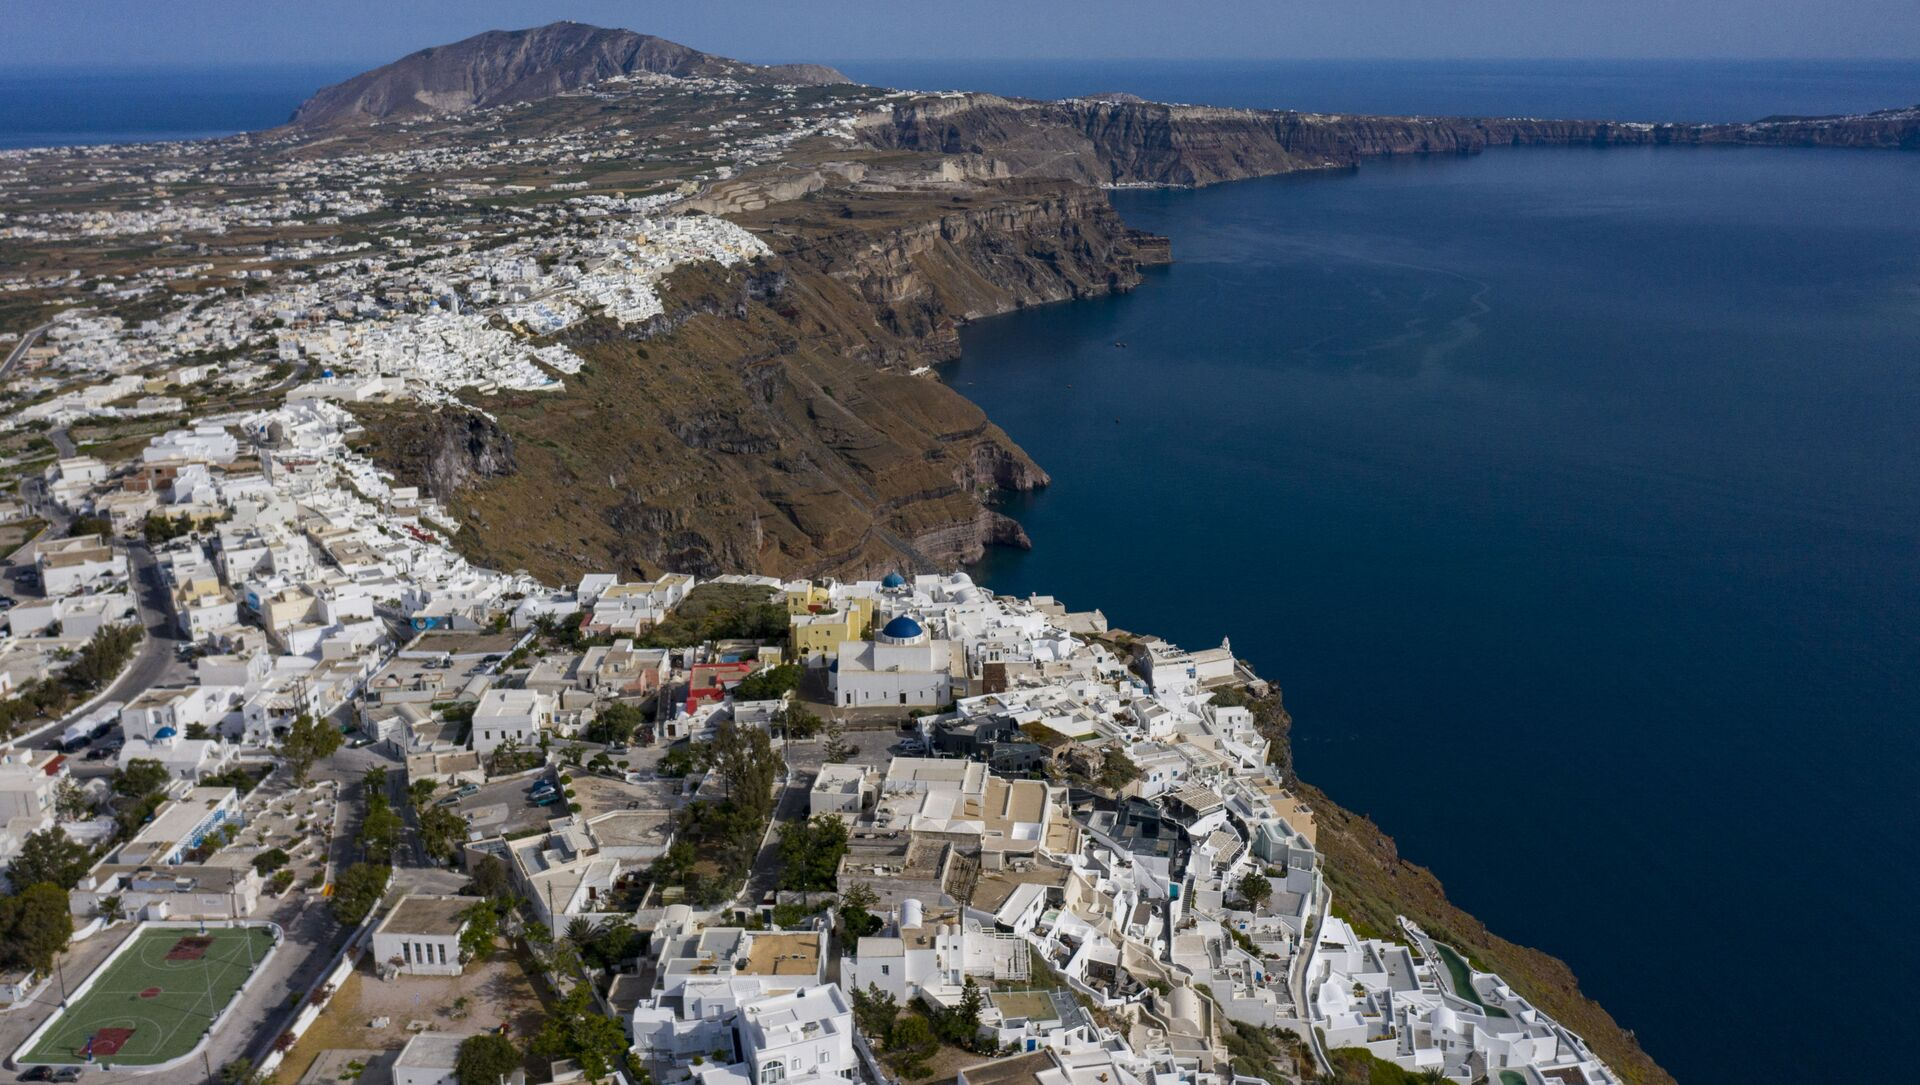 An aerial view taken on June 15, 2020 shows the town of Oia and Thyra on the island of Santorini as tourists from around 30 countries return to Greece by air, sea and land - Sputnik International, 1920, 03.08.2021